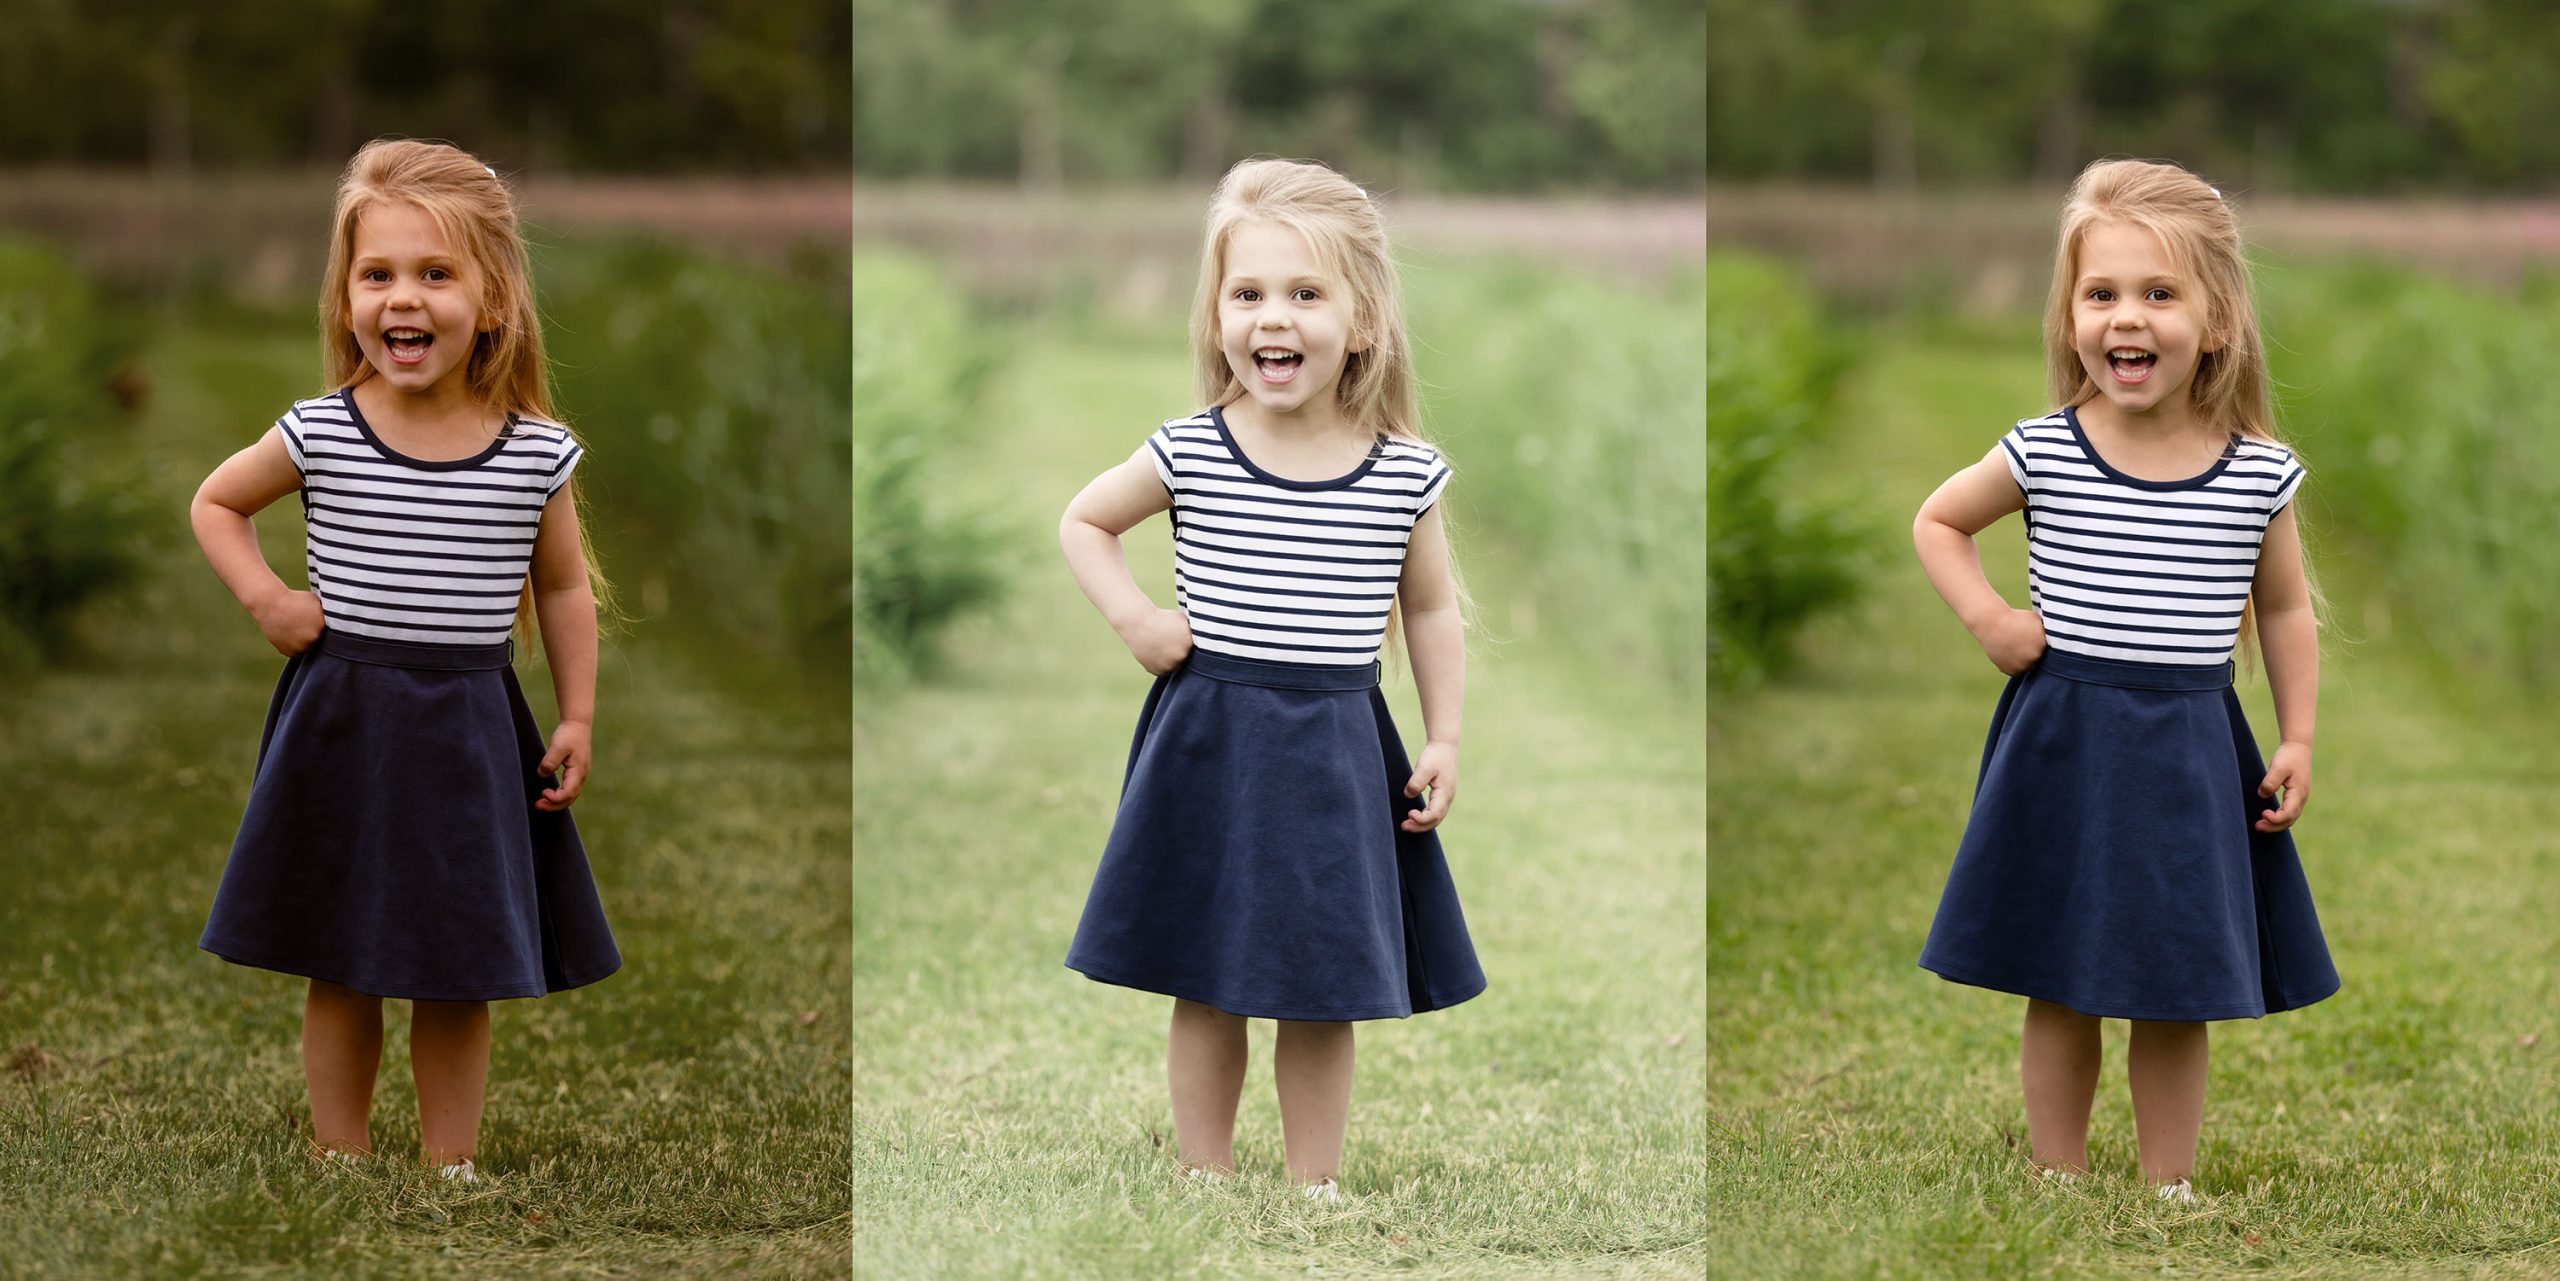 Three trendy photography edits demonstrated on image of four year old girl